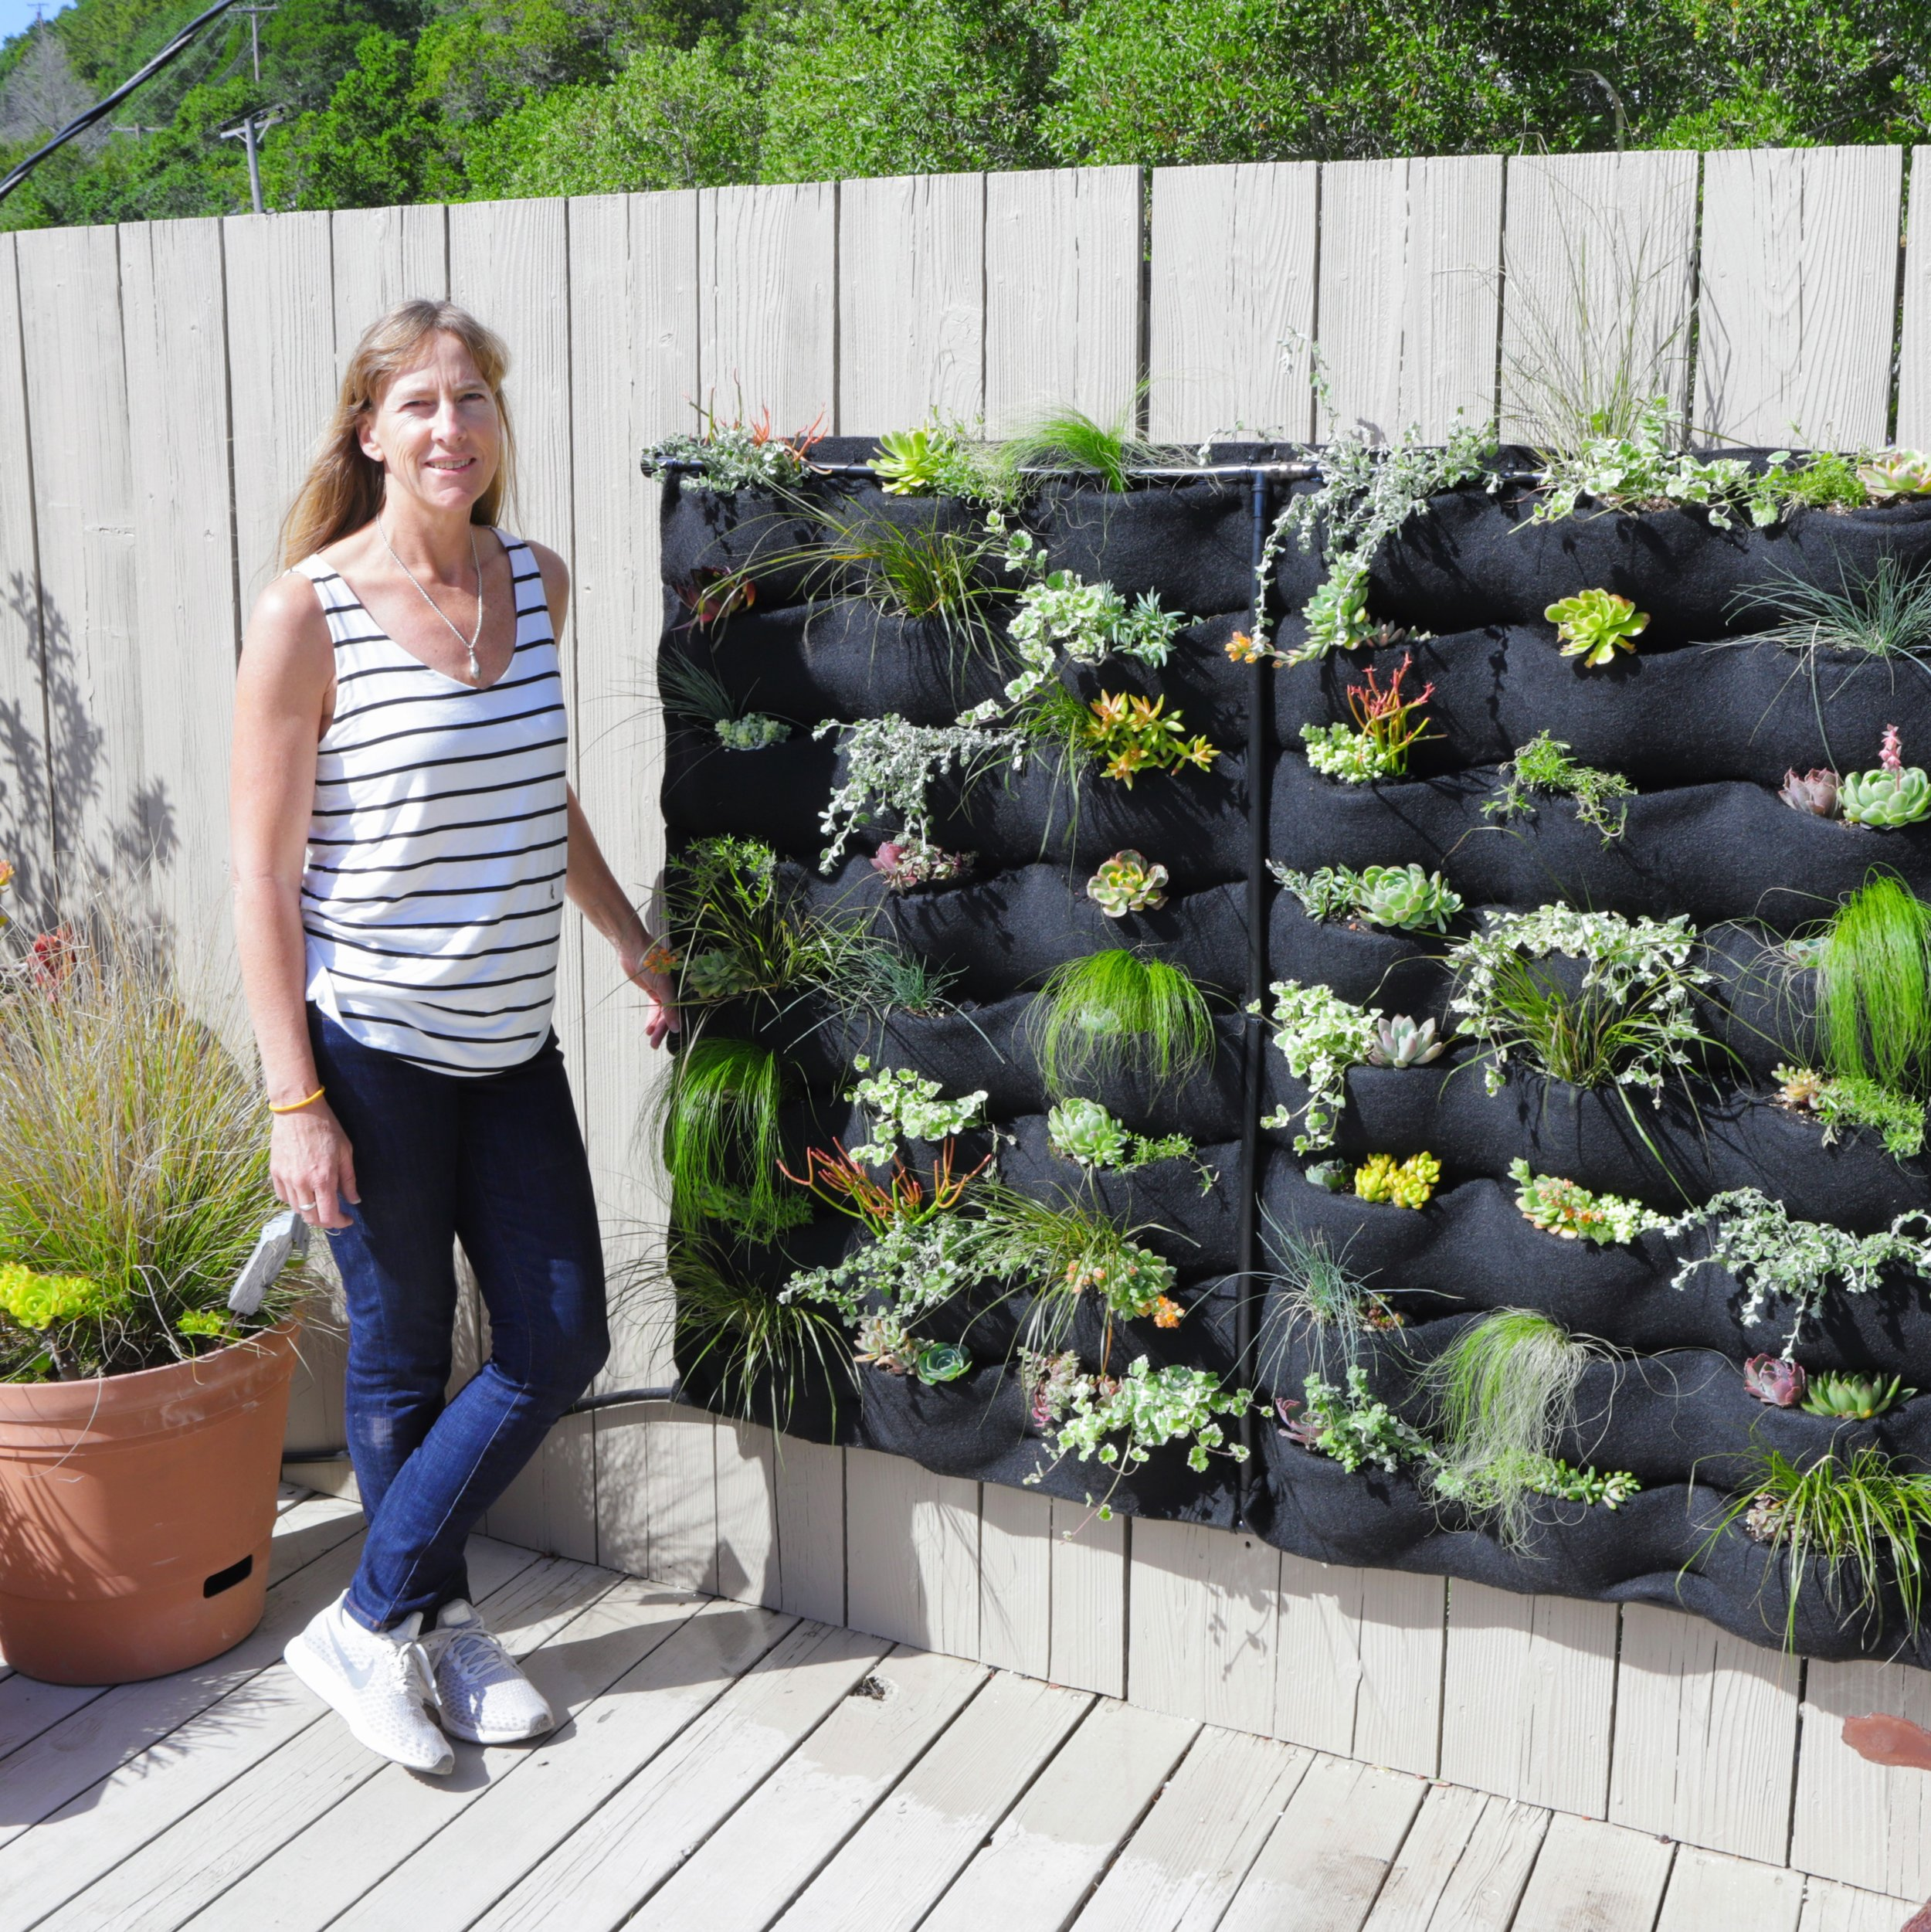 Christine of Planted Places created this Florafelt living wall for their clients home in just an afternoon.